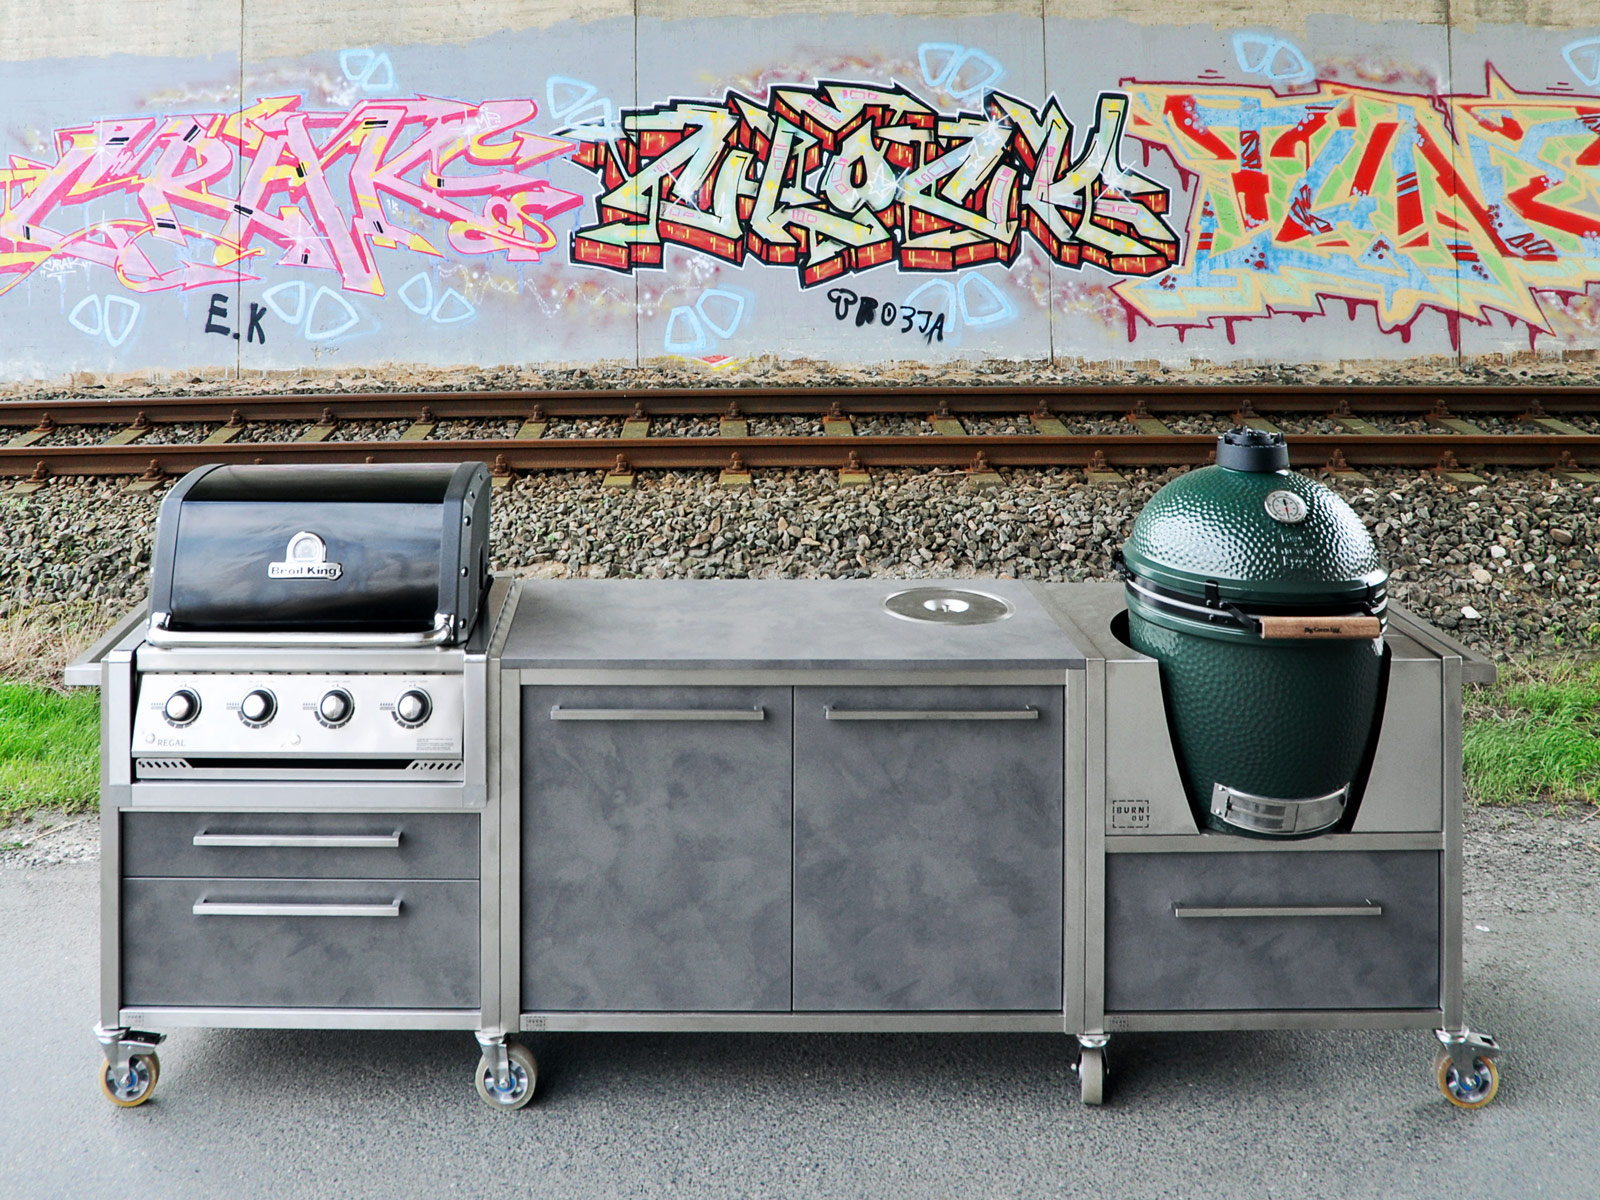 Outdoor Küche Burnout Unsere Grills Burnout Kitchen Die Outdoorküche